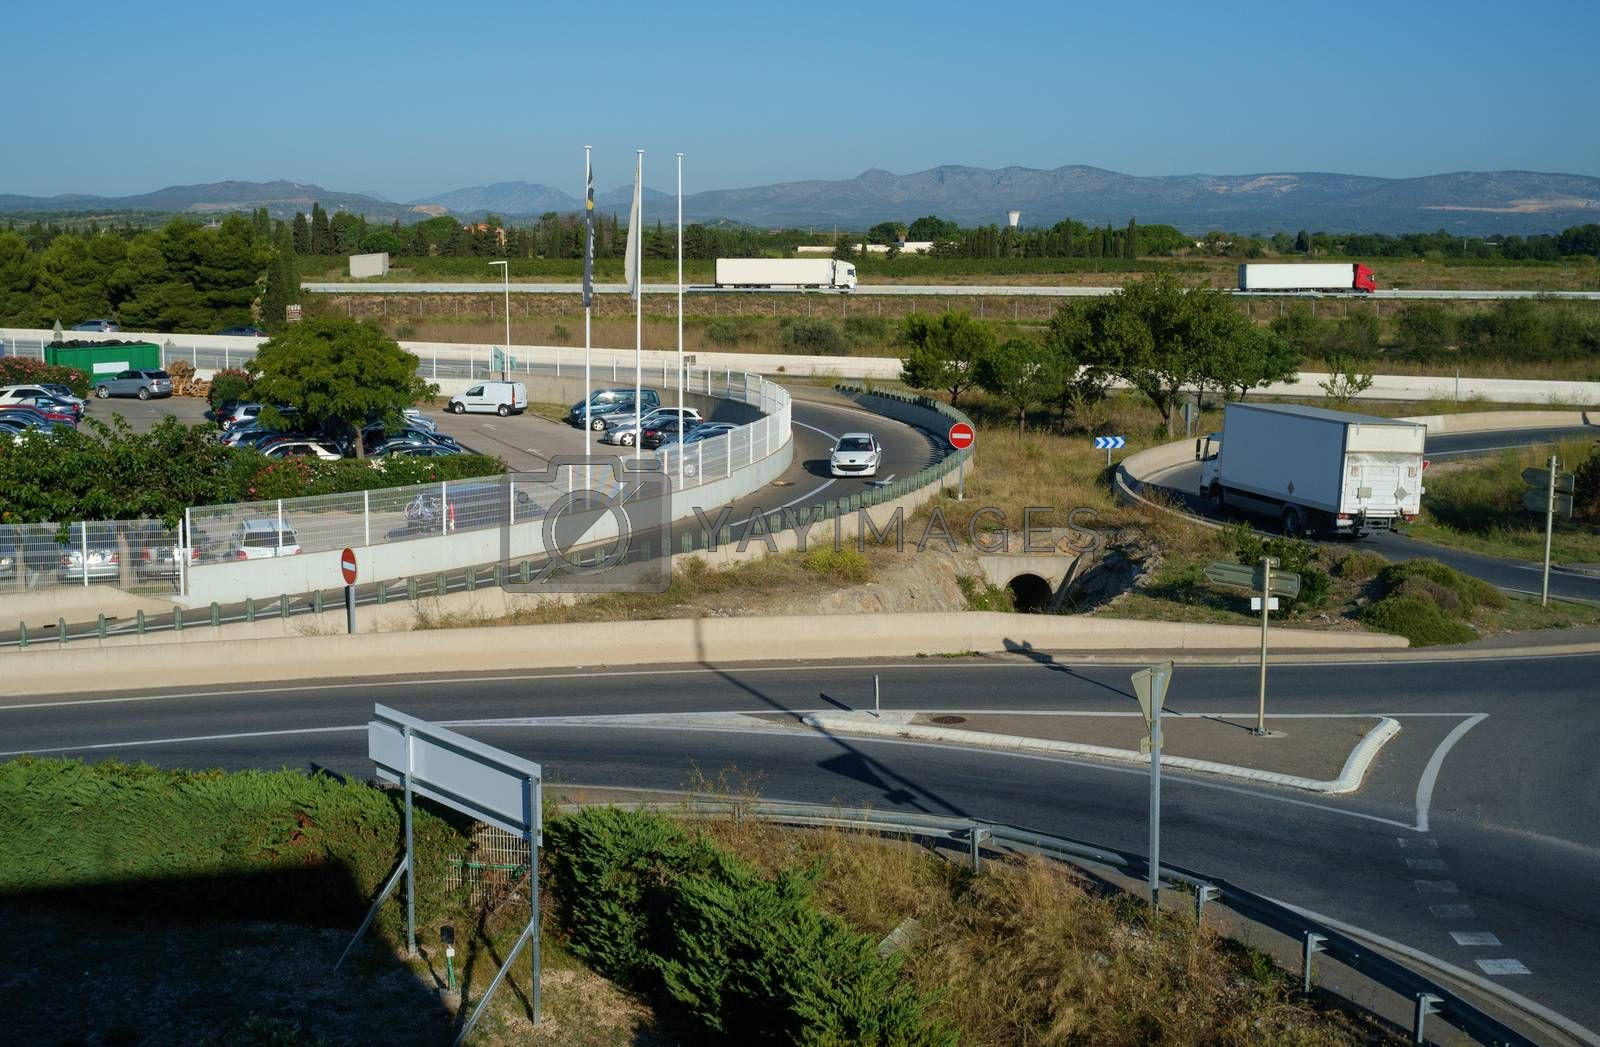 Cars at the road junction in the south of France.